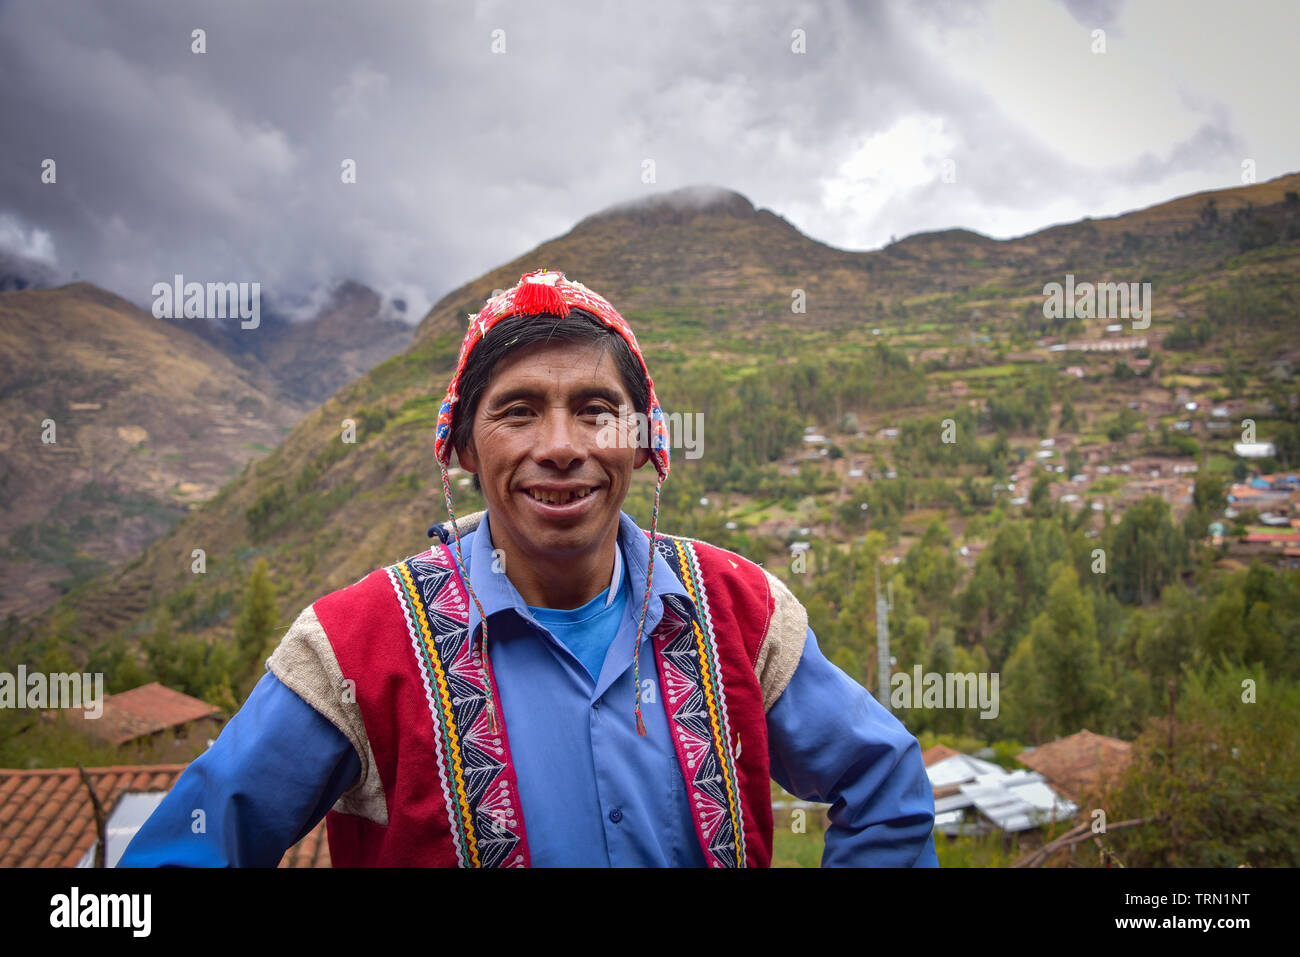 Sacred Valley, Cusco, Peru - Oct 13, 2018: An indigenous Quechua man in traditional dress - Stock Image